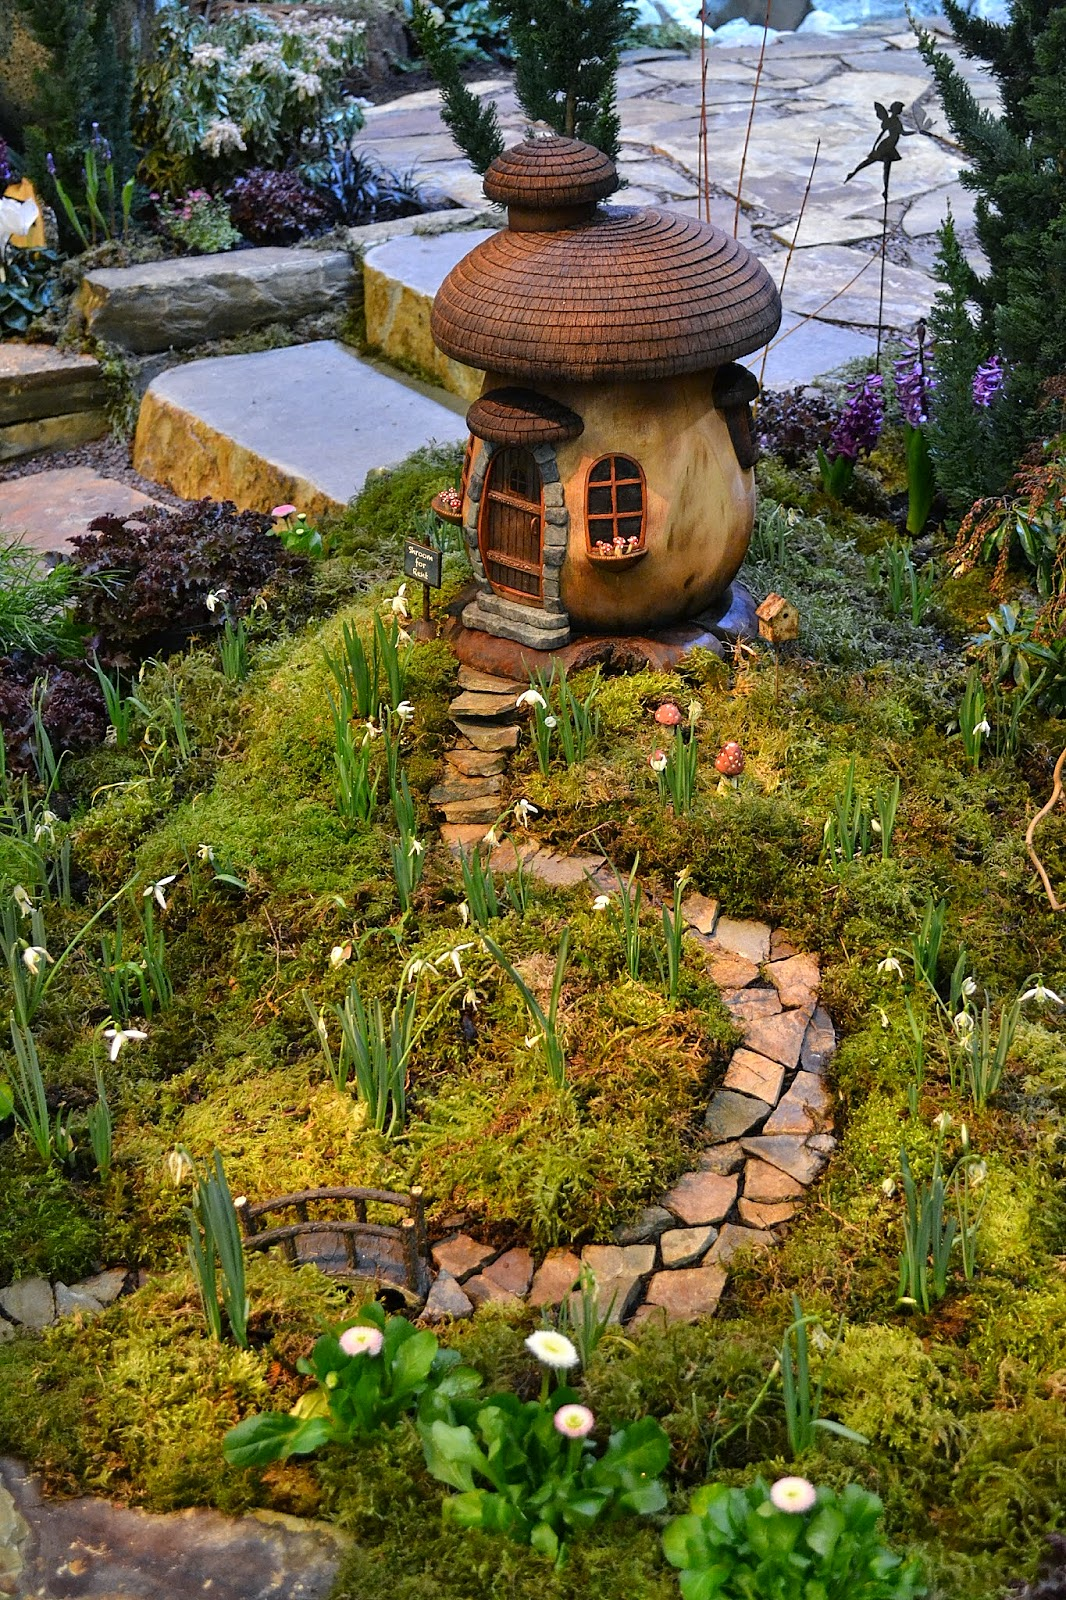 The Outlaw Gardener: Northwest Flower and Garden Show Funny Business